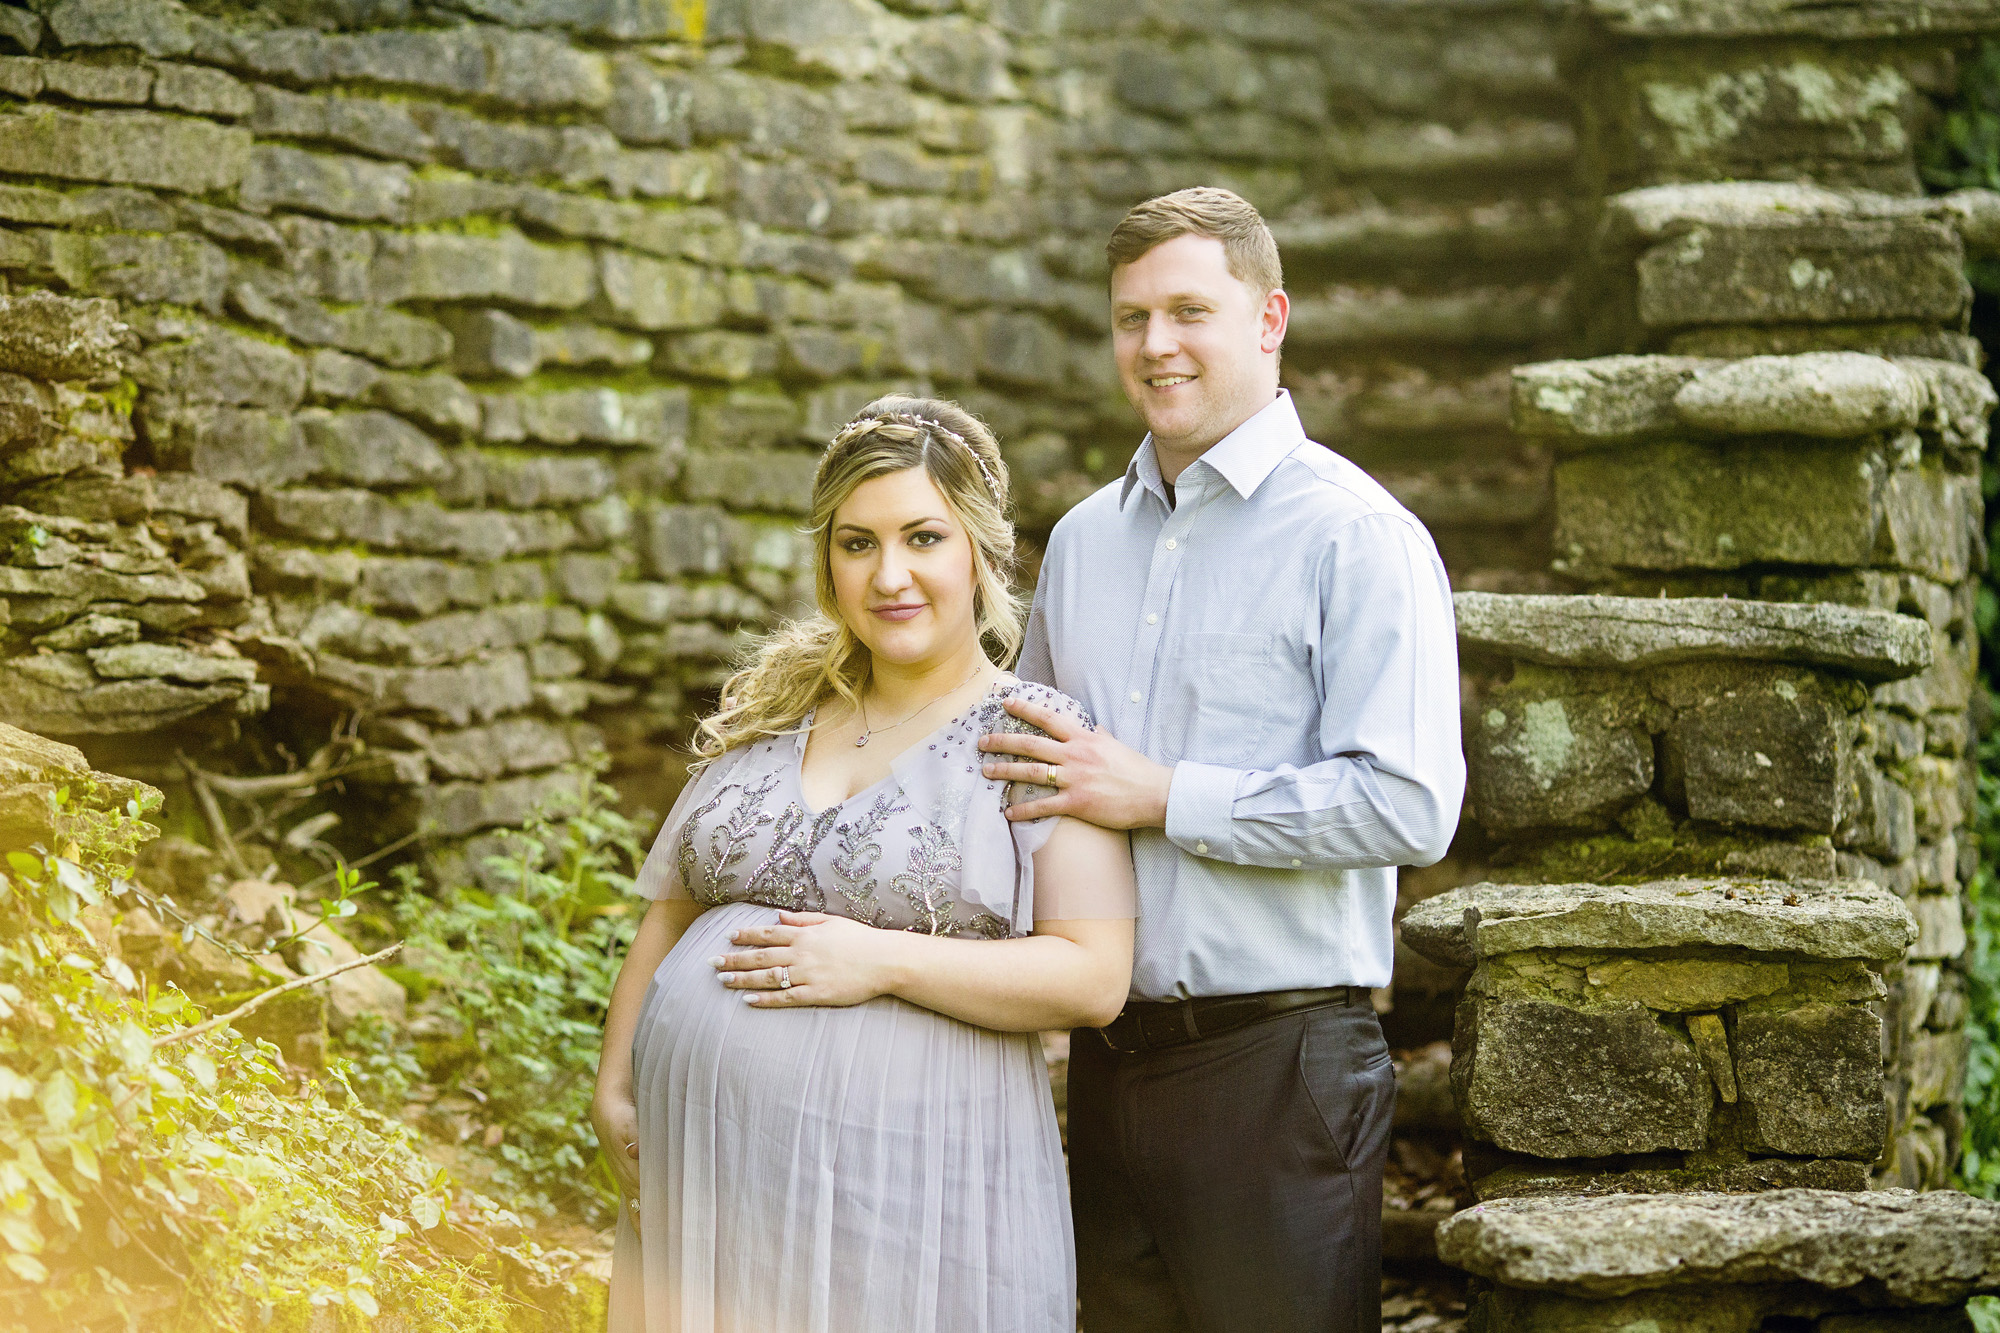 Seriously_Sabrina_Photography_Lexington_Kentucky_Fairytale_Maternity_Portraits_Horse_Park_Reynolds_9.jpg